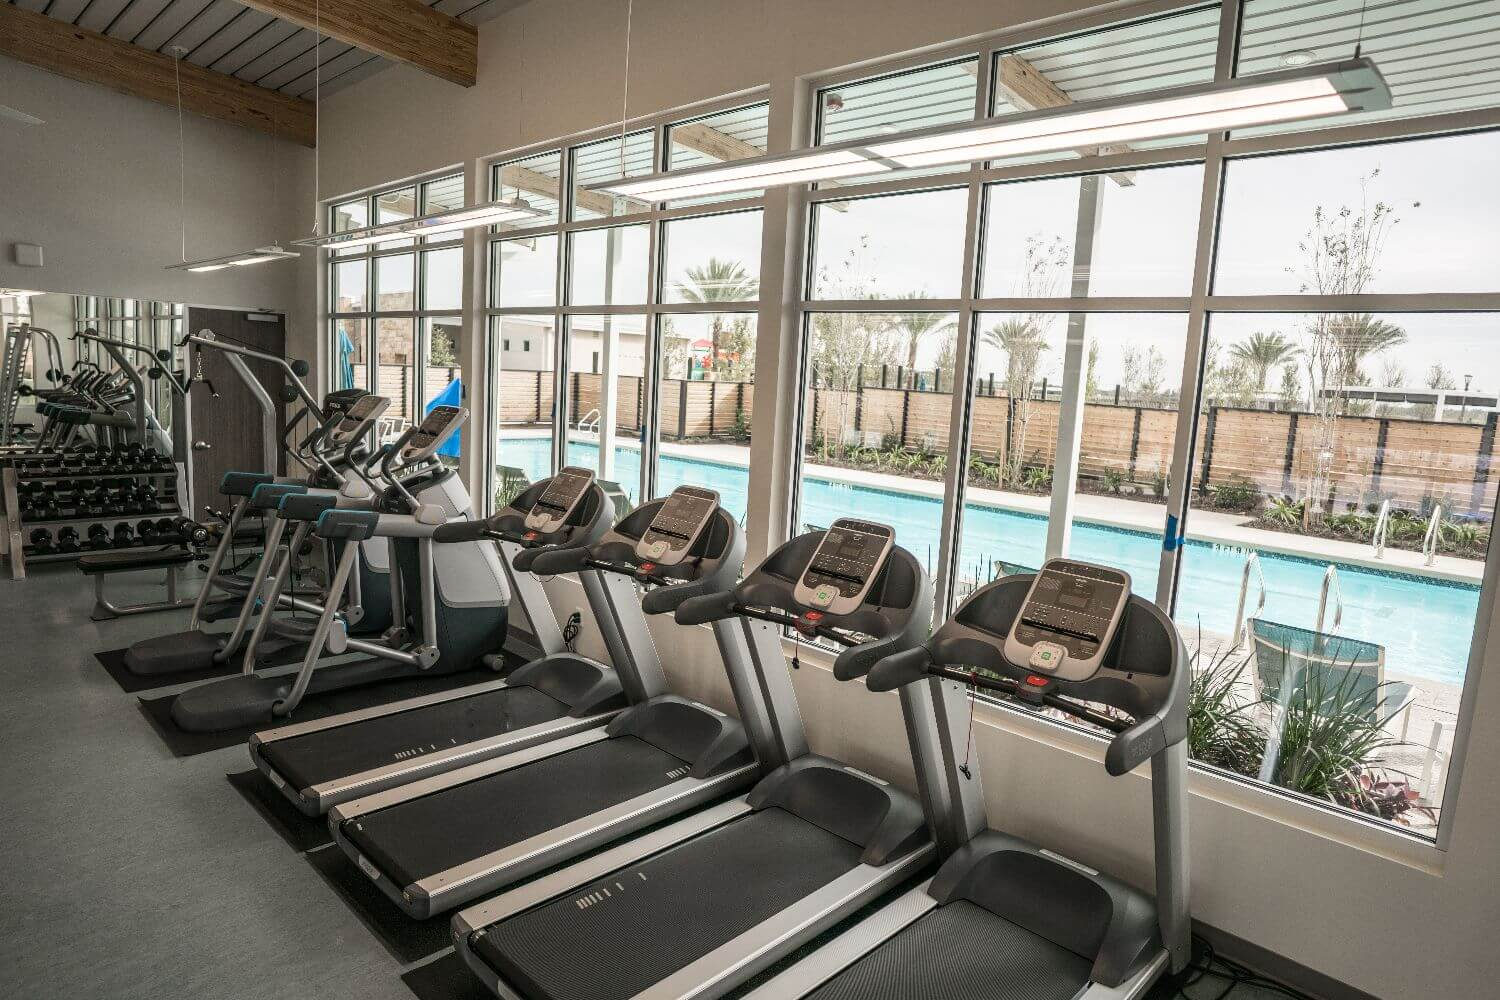 Meridiana - Fitness Center/Lap Pool